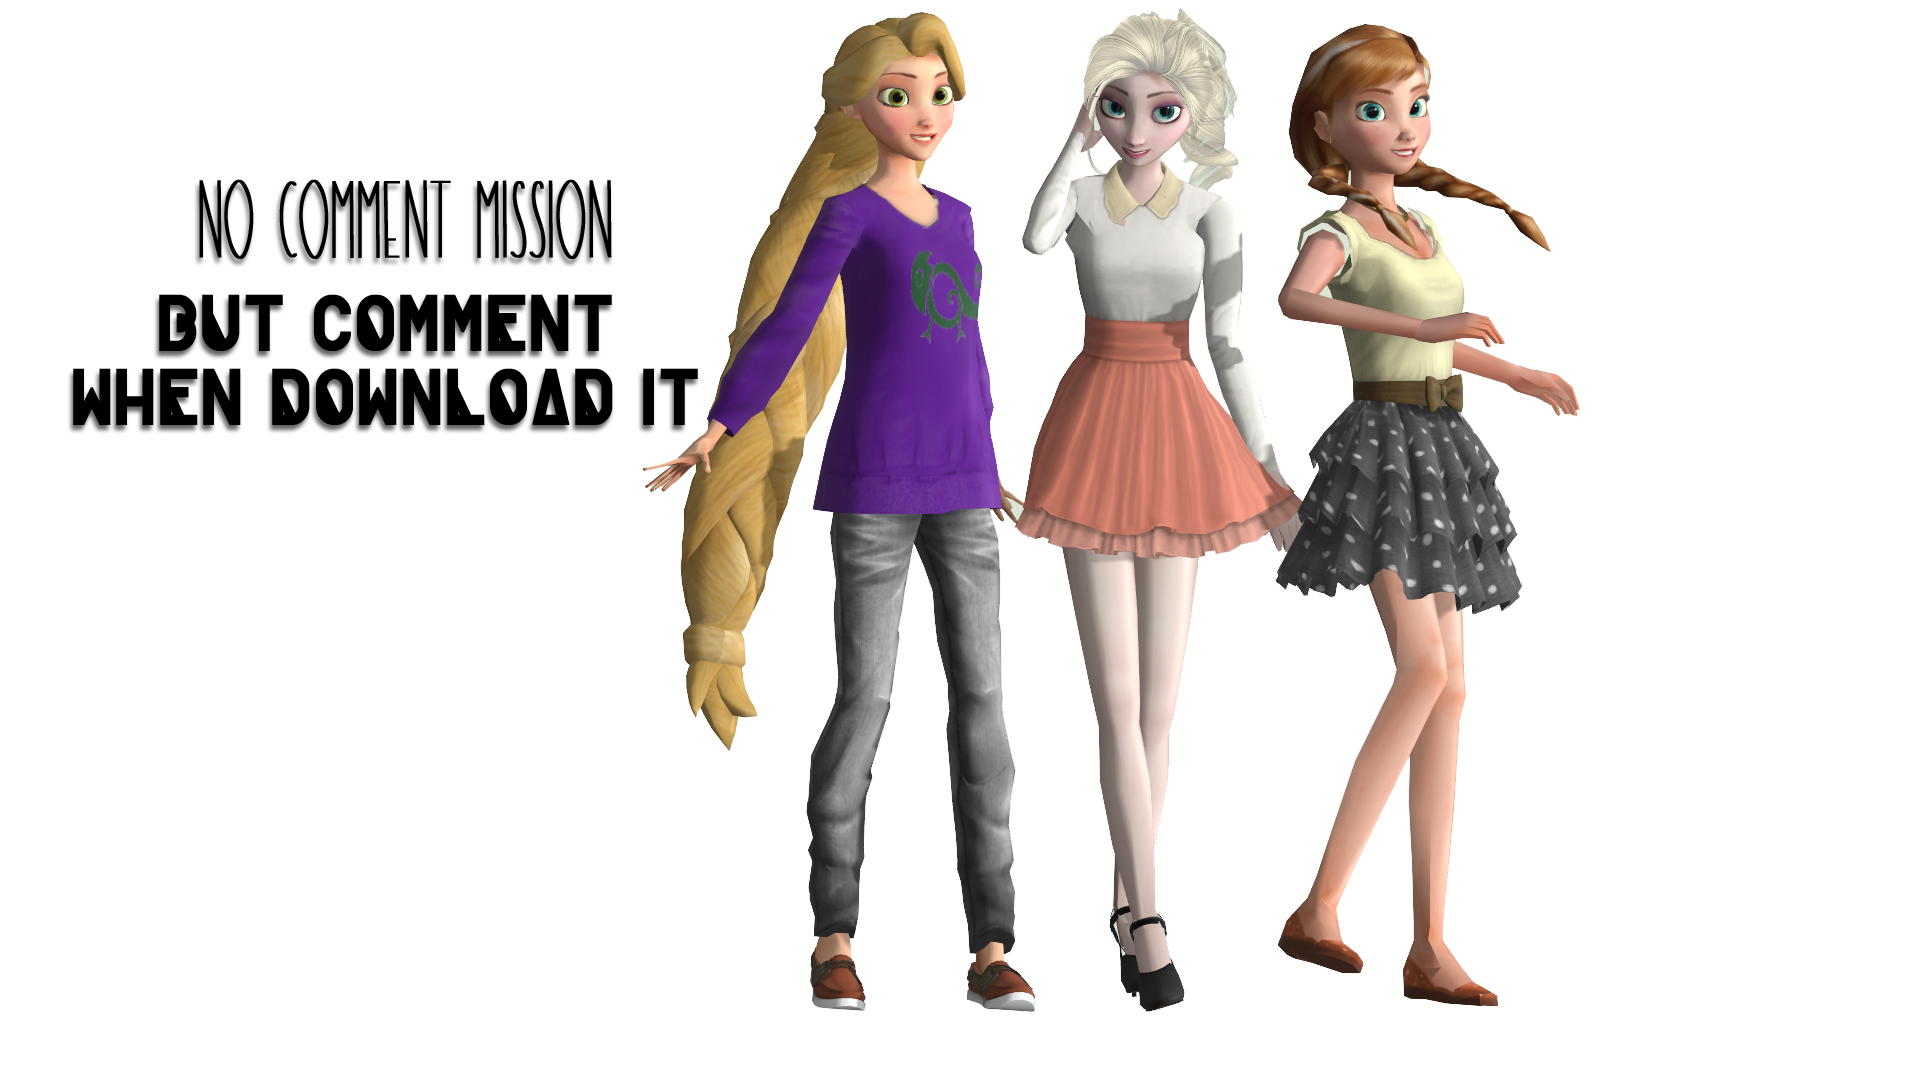 MMD Modern Rapunzel Elsa And Anna Download By Katsura Chan72 On DeviantArt